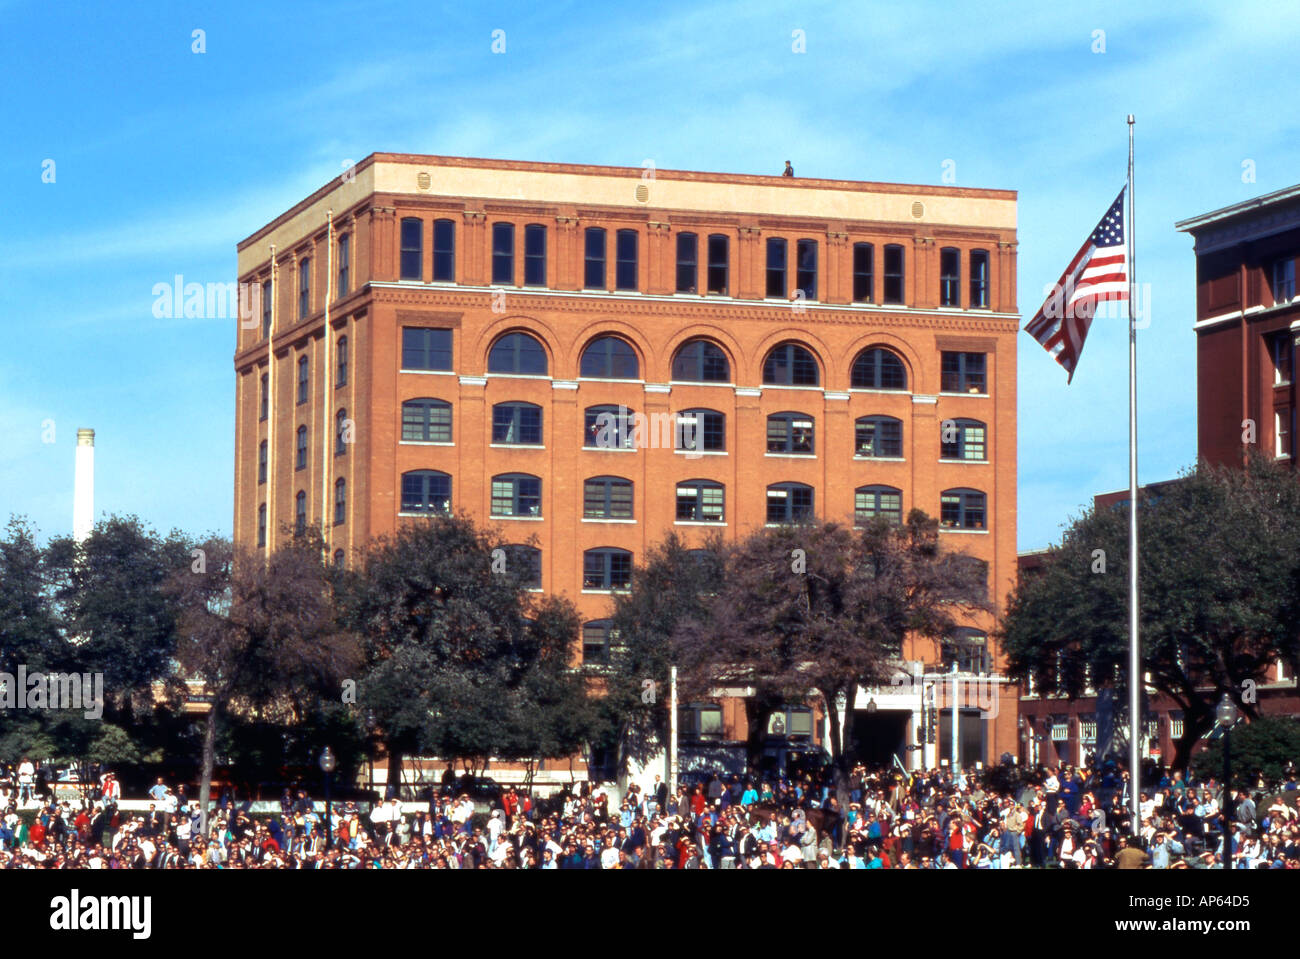 Image result for Texas school book depository building dallas and image